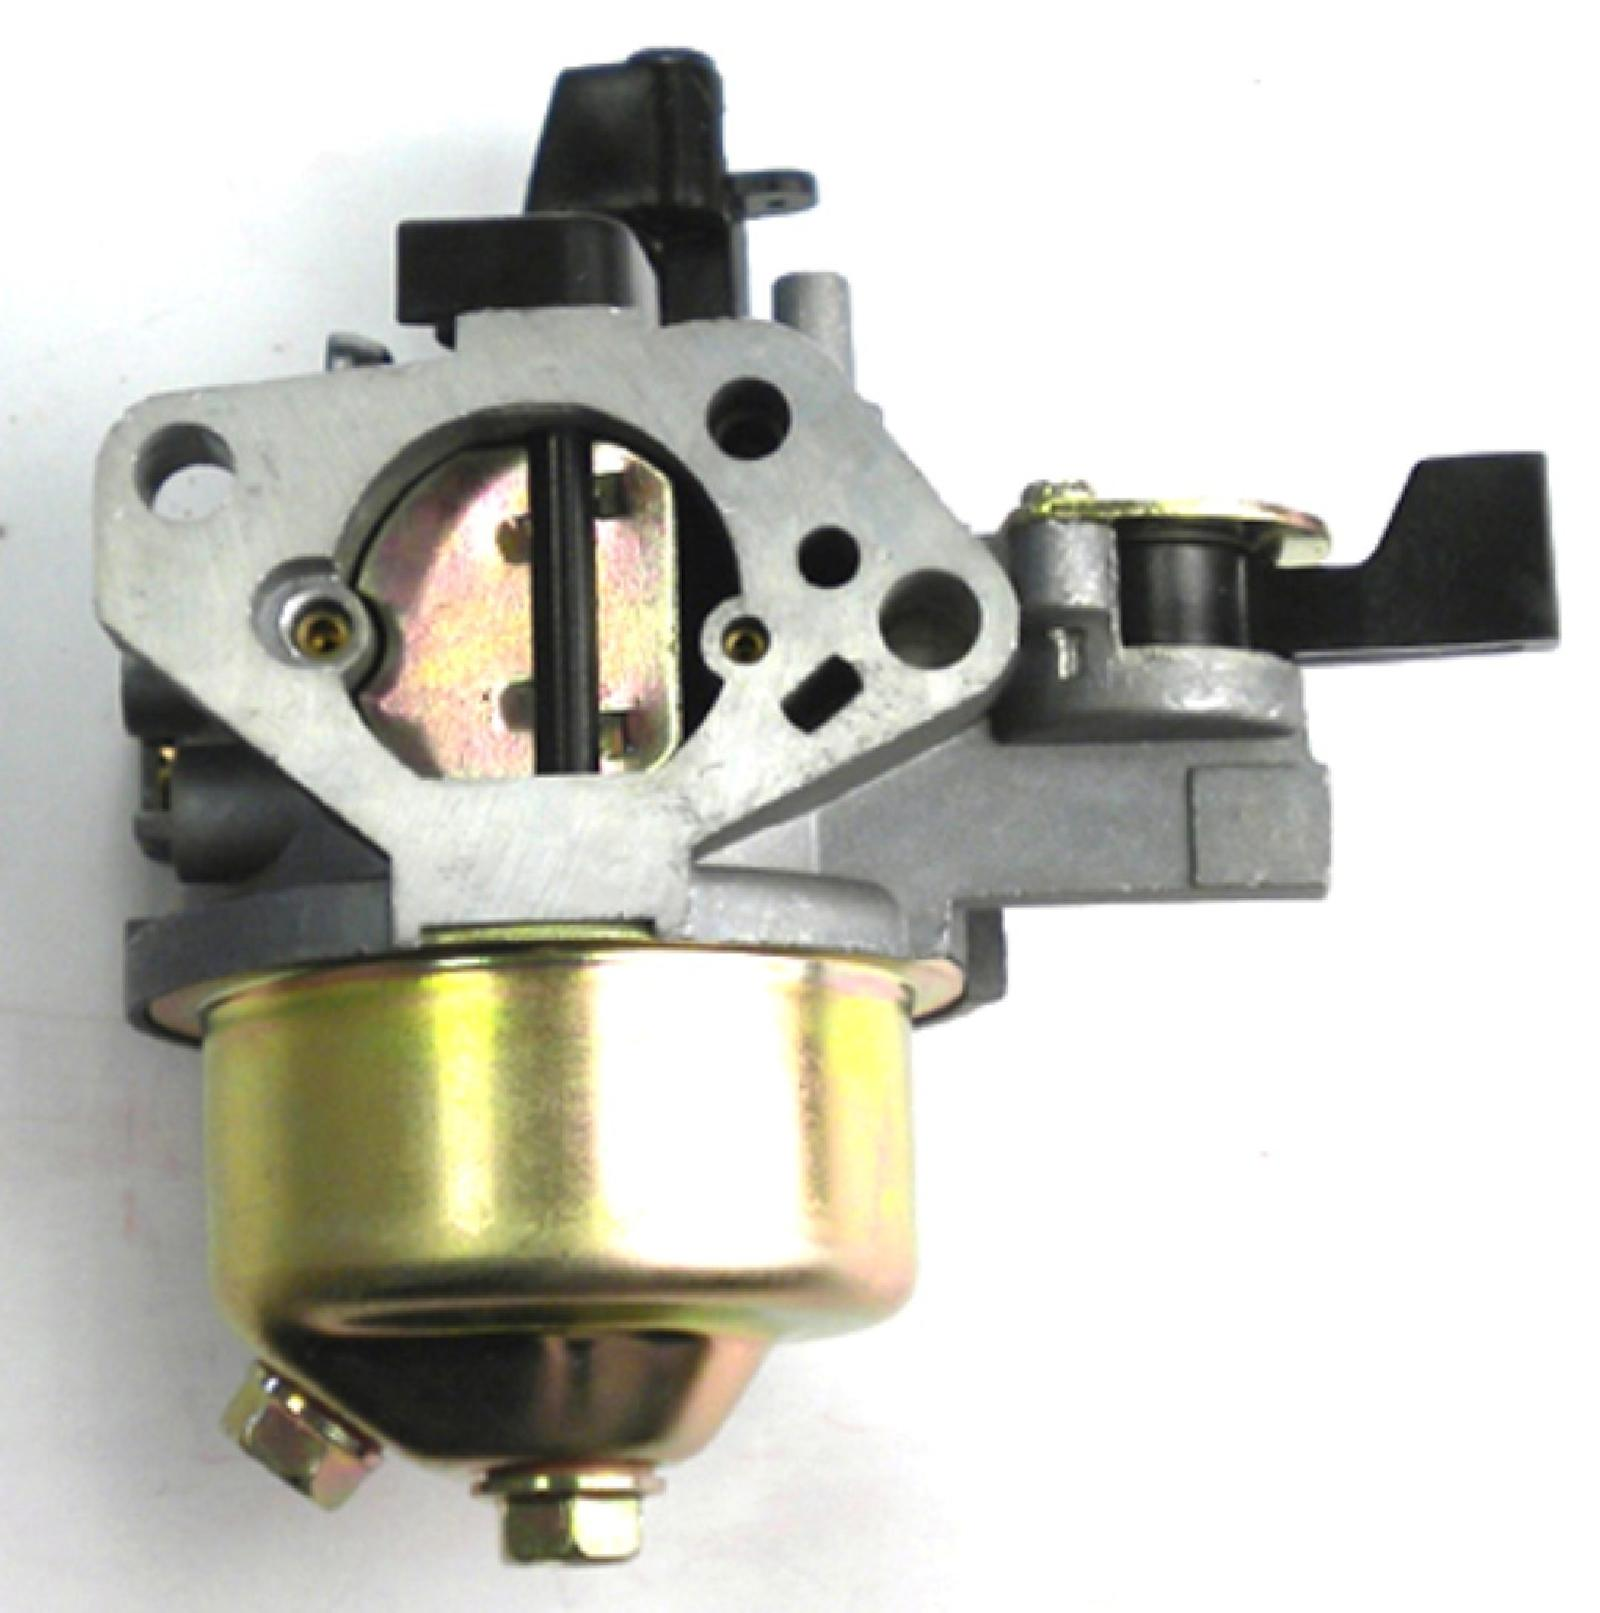 REPLACEMENT 16100-ZE3-V01 HONDA GX340 CARBURETOR ASSEMBLY part#